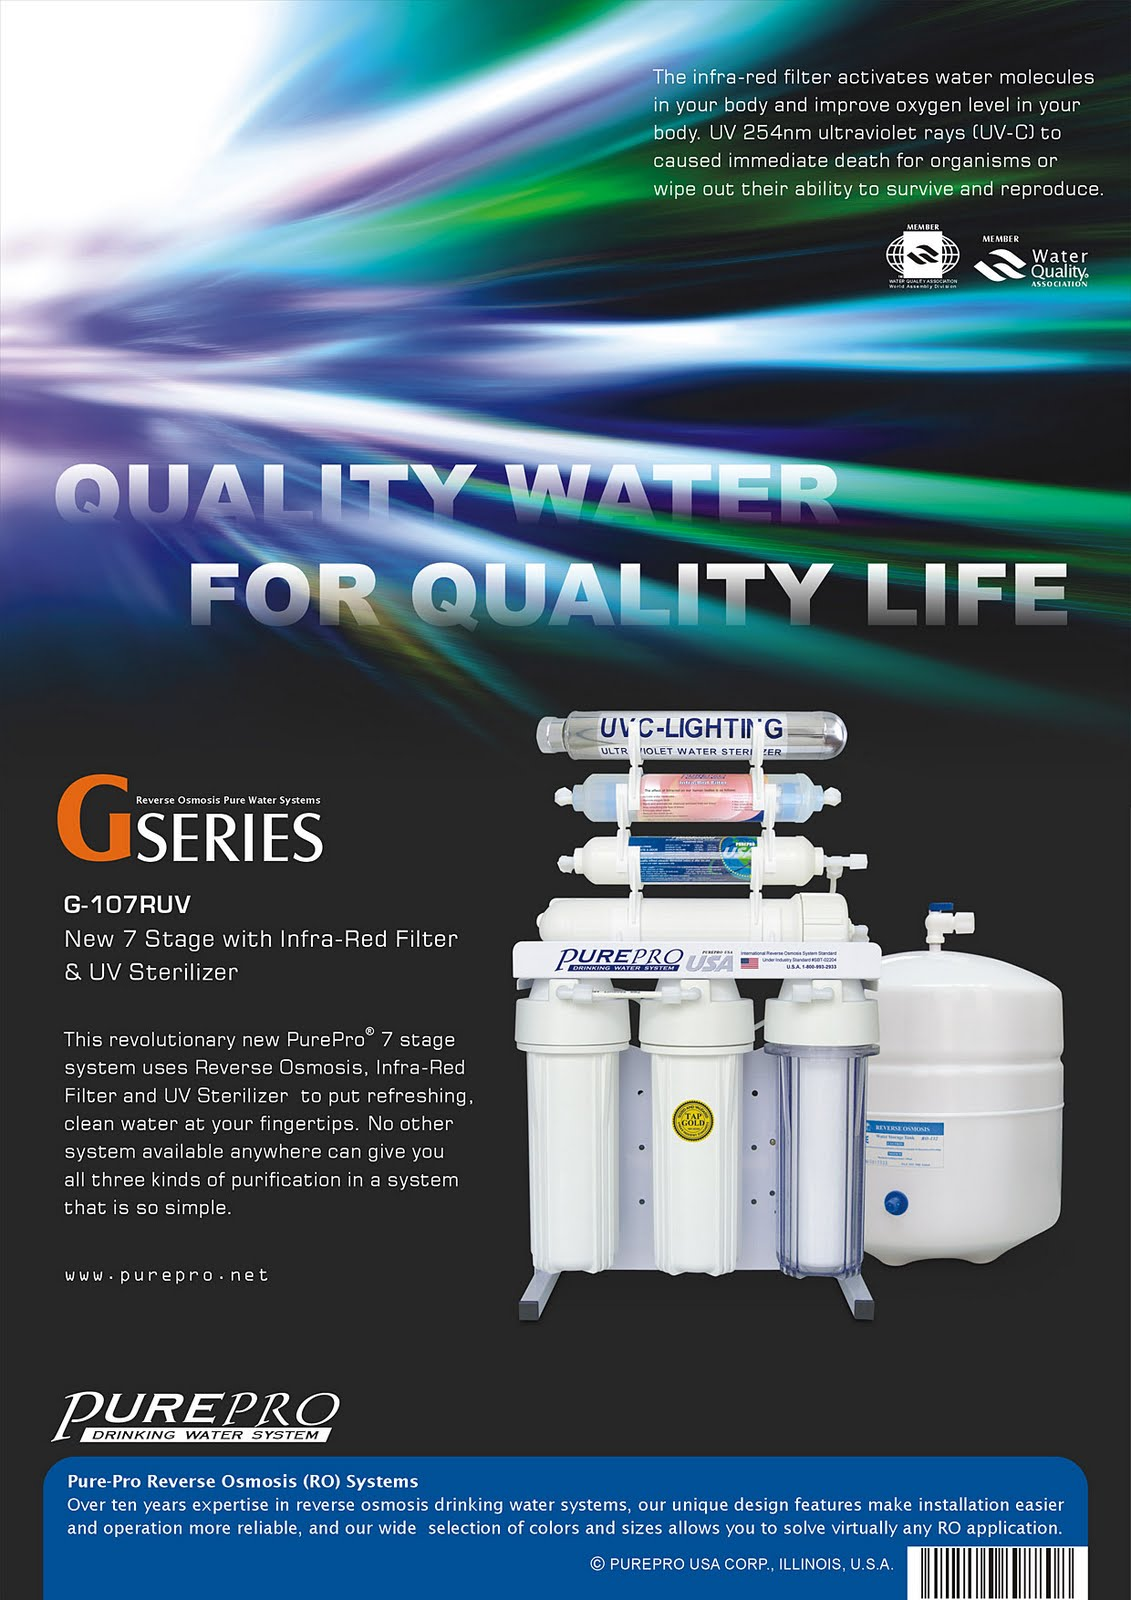 PurePro® G107-RUV Reverse Osmosis Water Filtration System